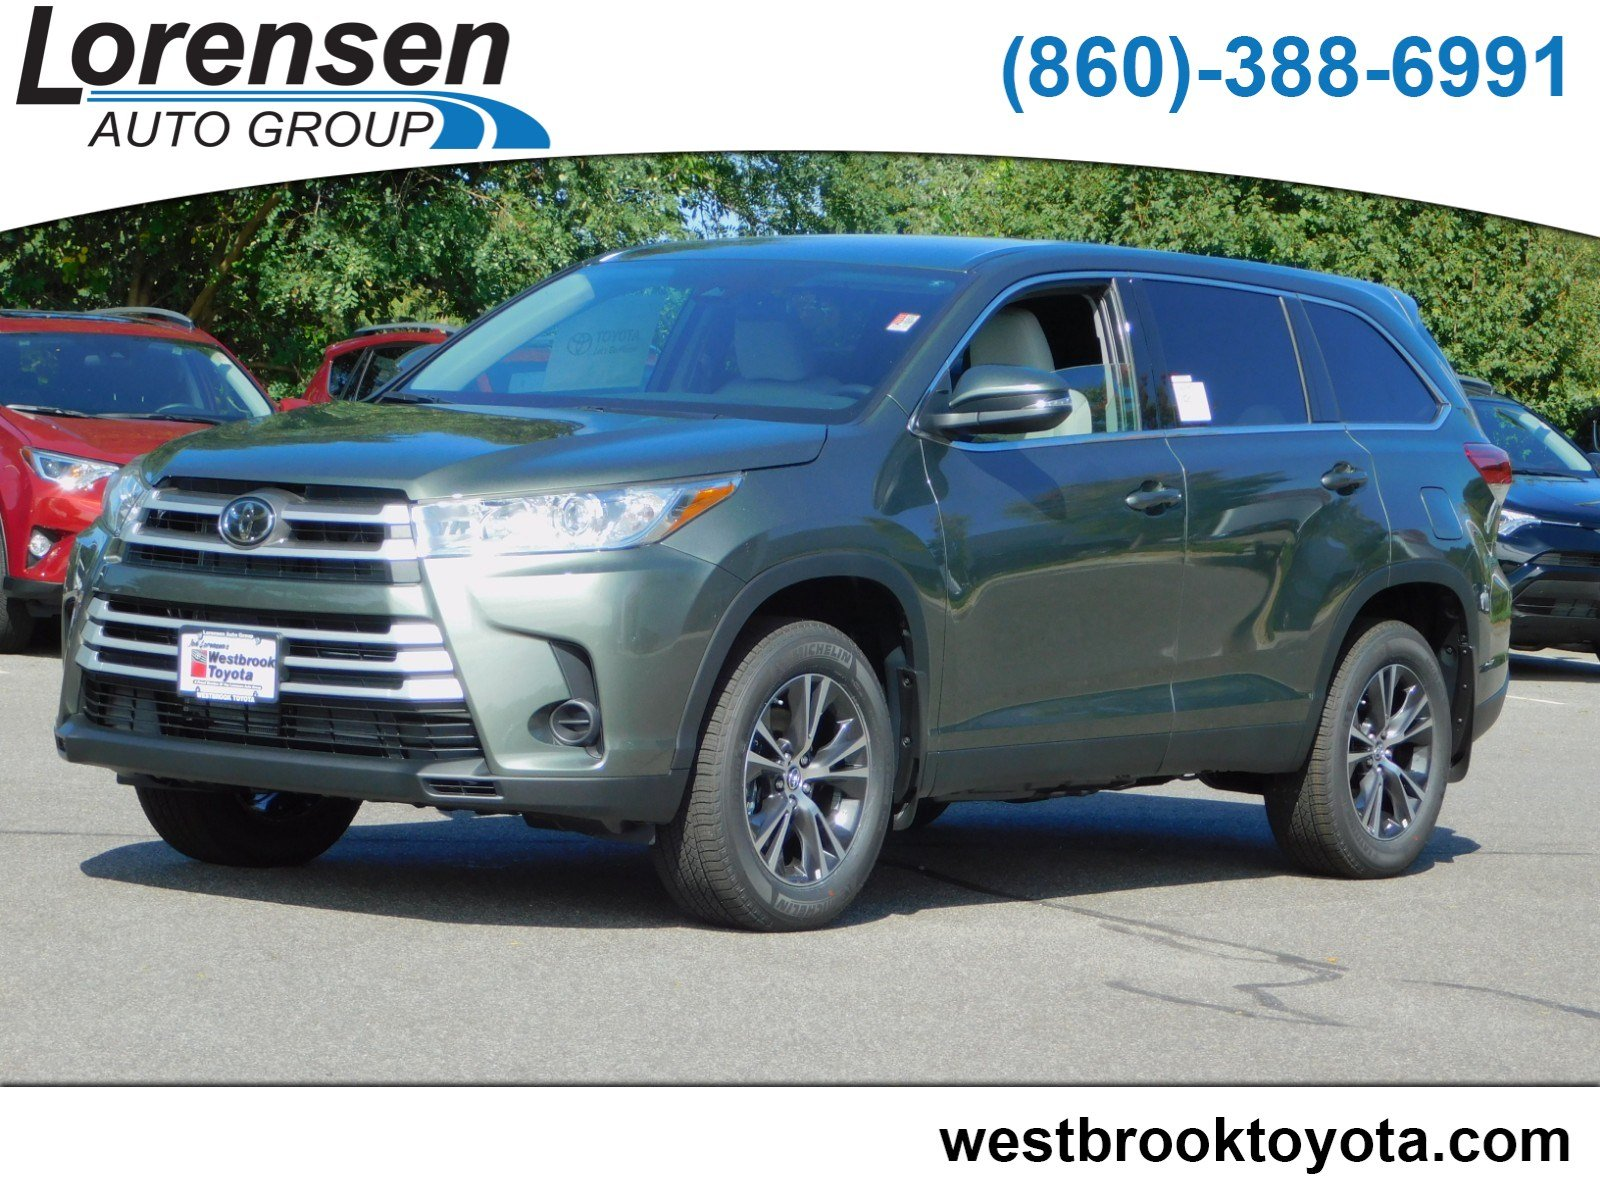 Toyota Highlander Service Manual: Inside vehicle